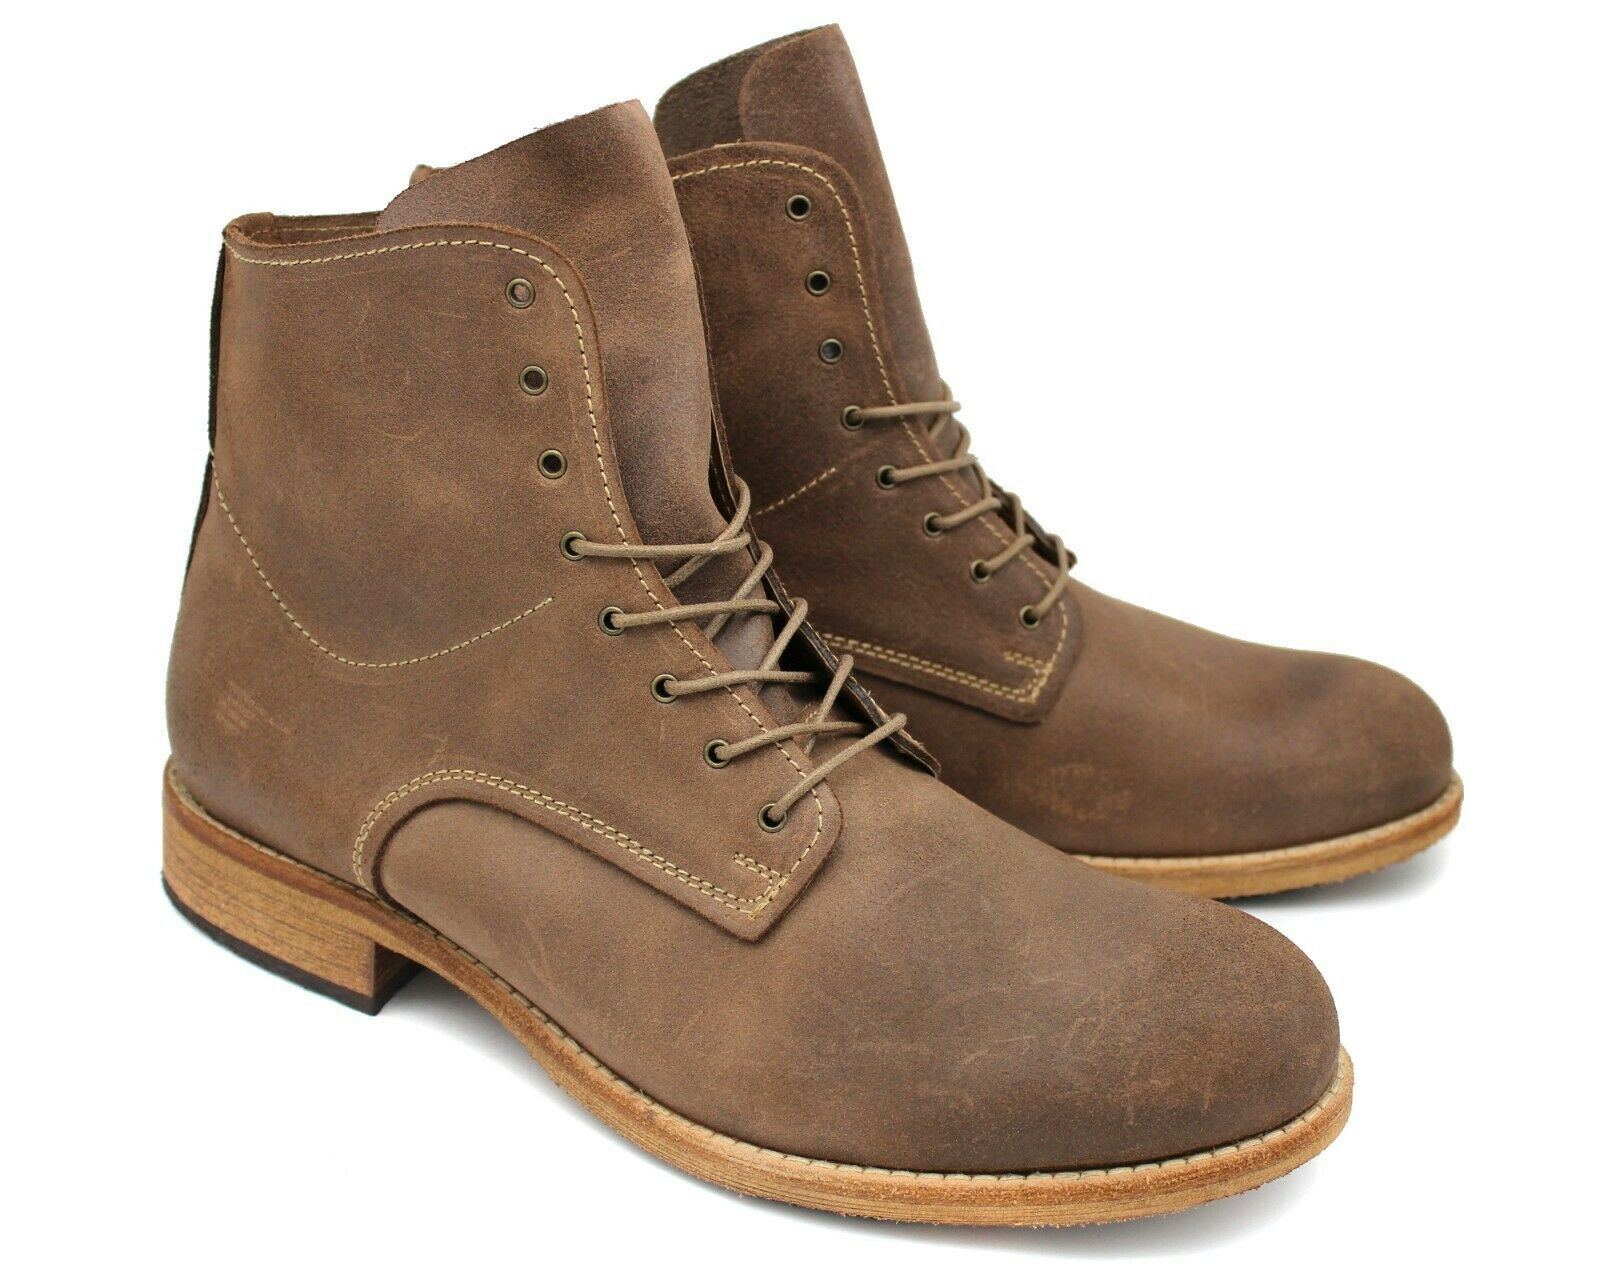 *C48 UK 10 NEW LACUZZO BEIGE BROWN ITALIAN LEATHER HIGH TOP COMBAT BOOTS EU 44